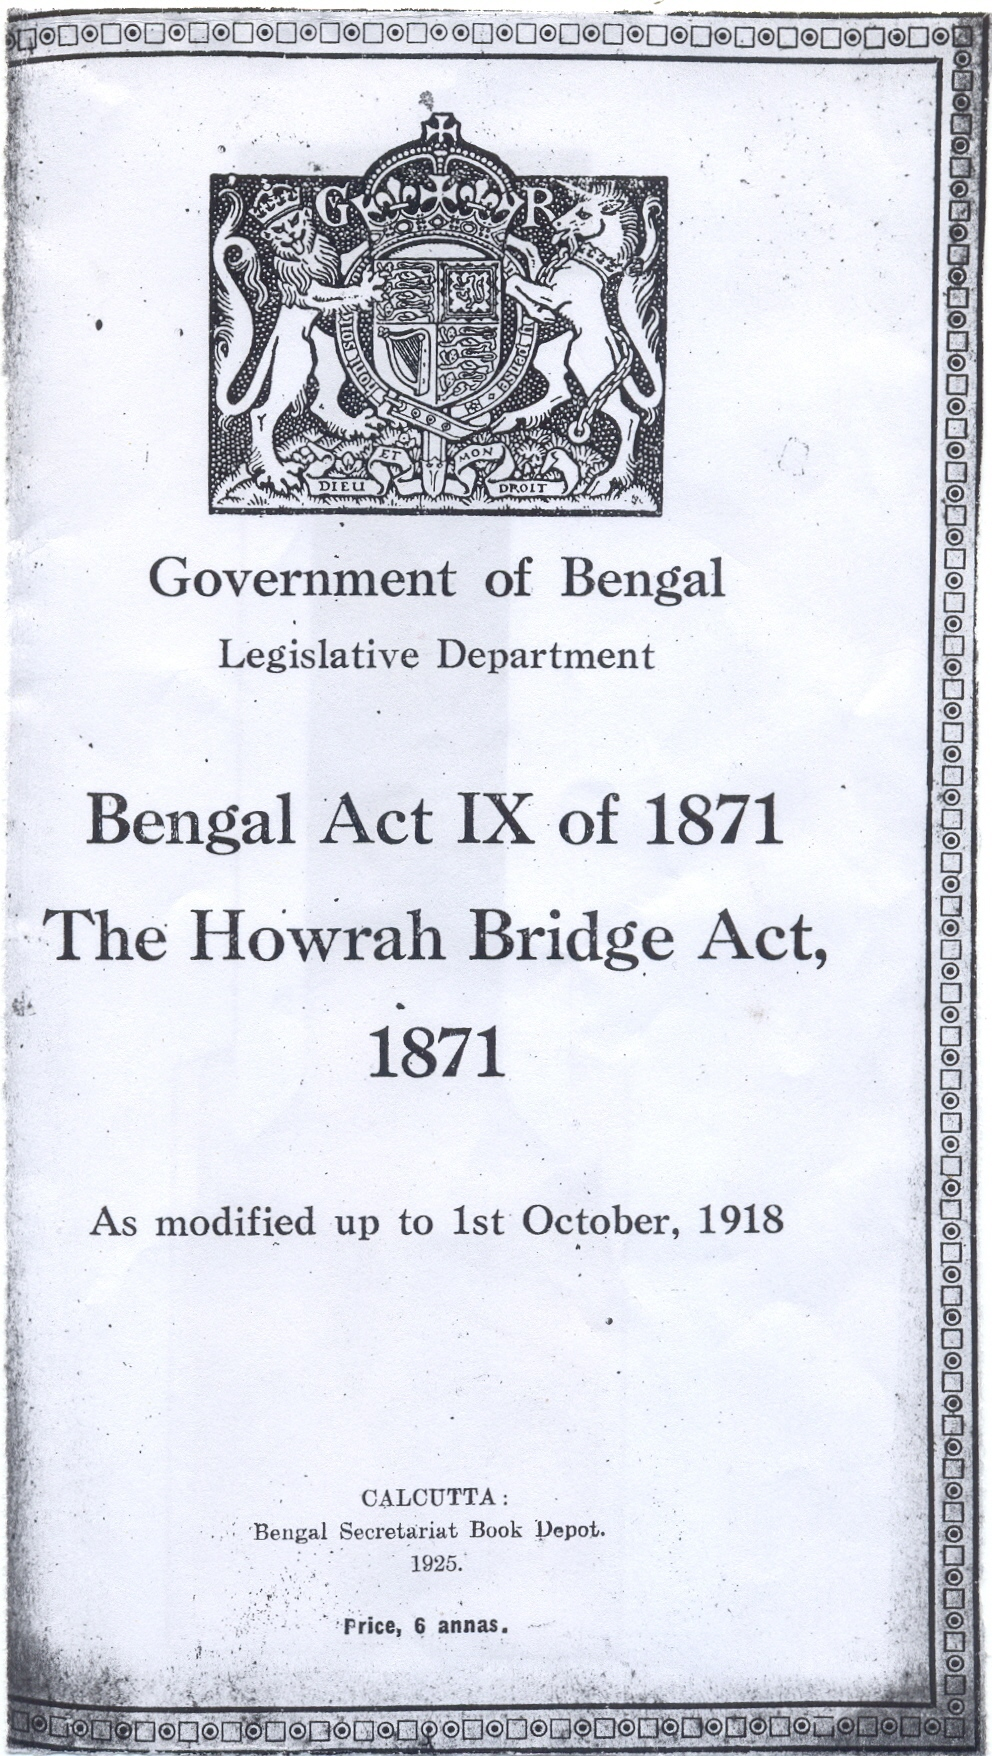 The Howrah Bridge Act of 1871